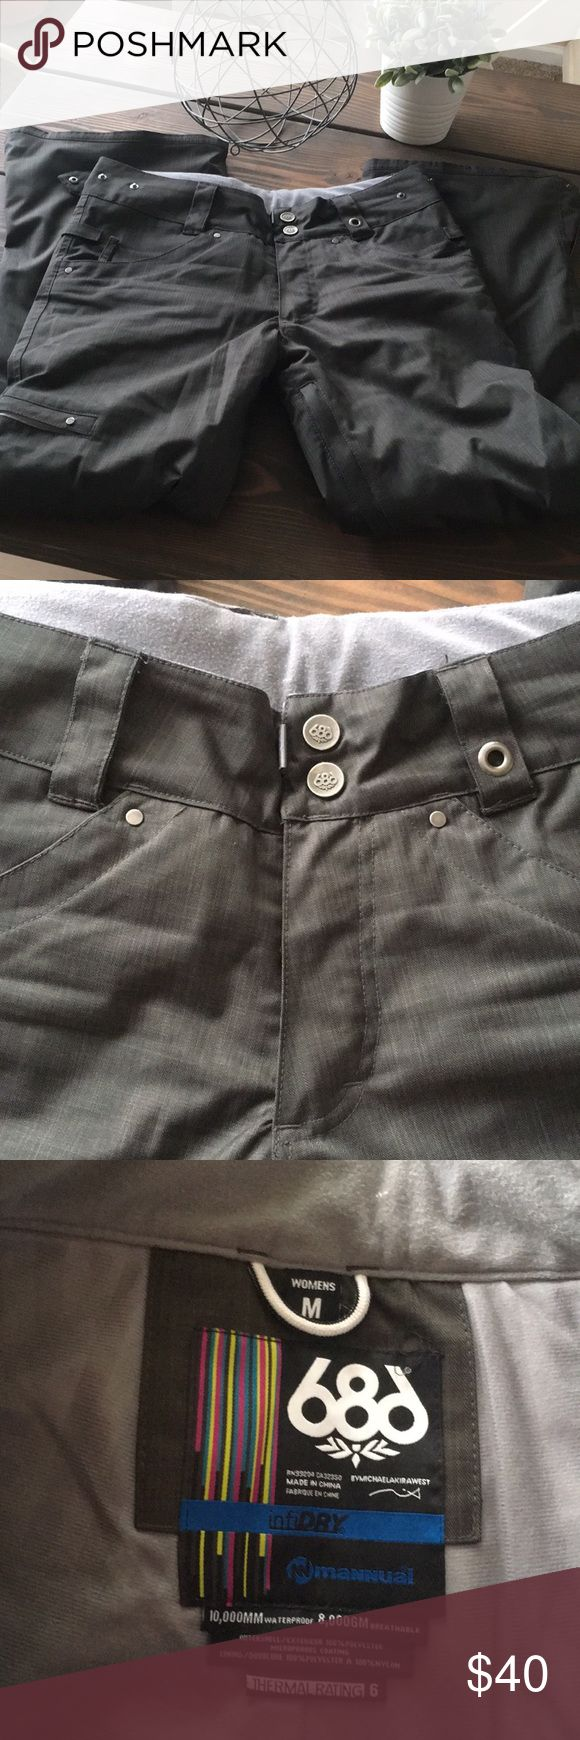 686 Snowboard Ski Pants Gorgeous like new pair of 686 pants in excellent condition. No flaws. Smoke free home. Color is a gray brown. Size Medium. 686 Pants